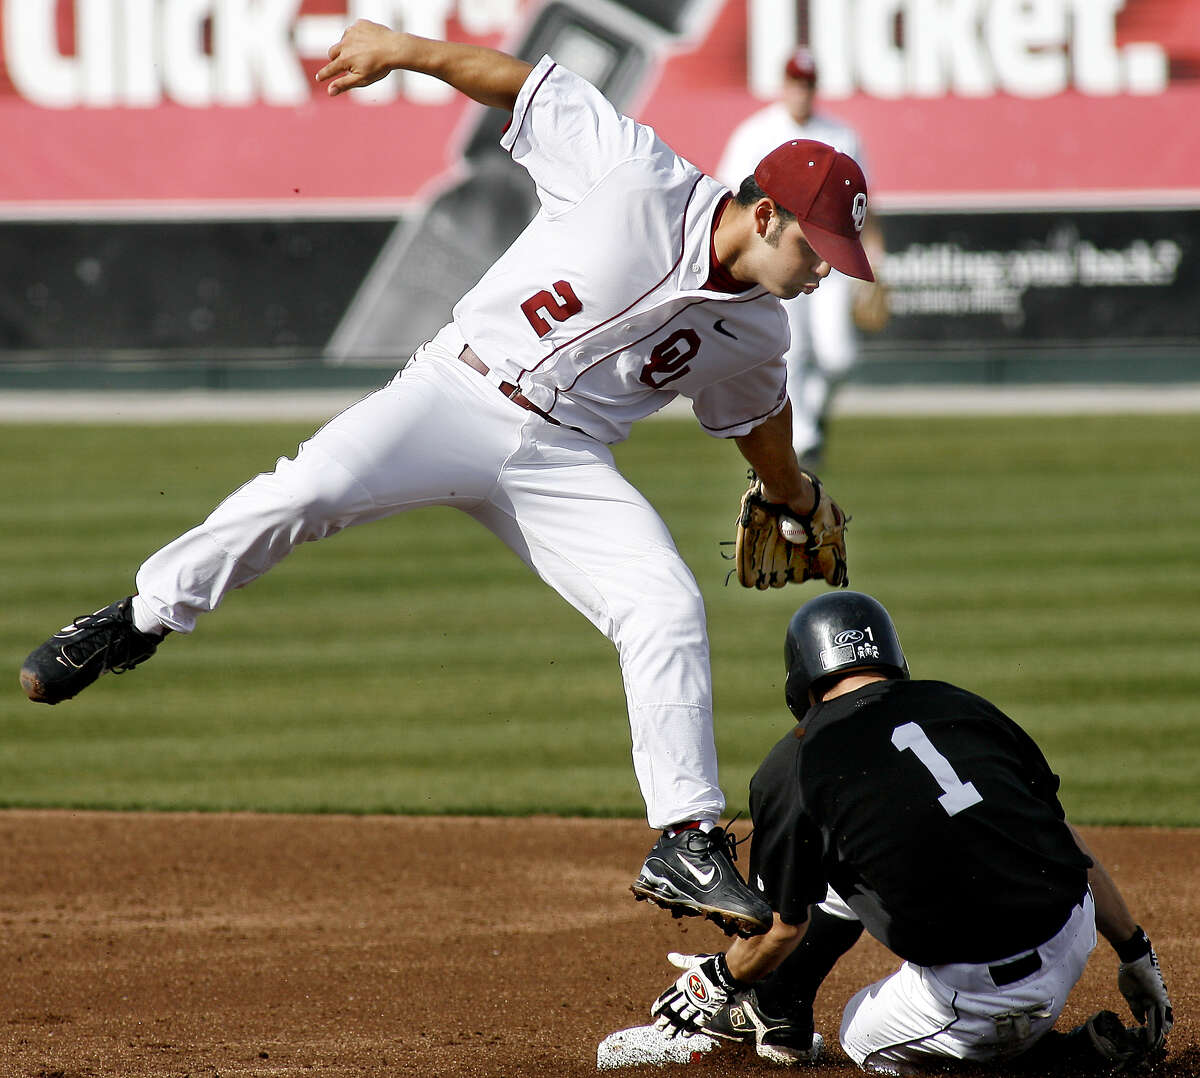 Wichita State outfielder Kenny Waddell (1) slides under the tag of Oklahoma second baseman Aaron Reza (2) in a baseball game Tuesday, Feb. 28, 2006, in Norman, Okla.